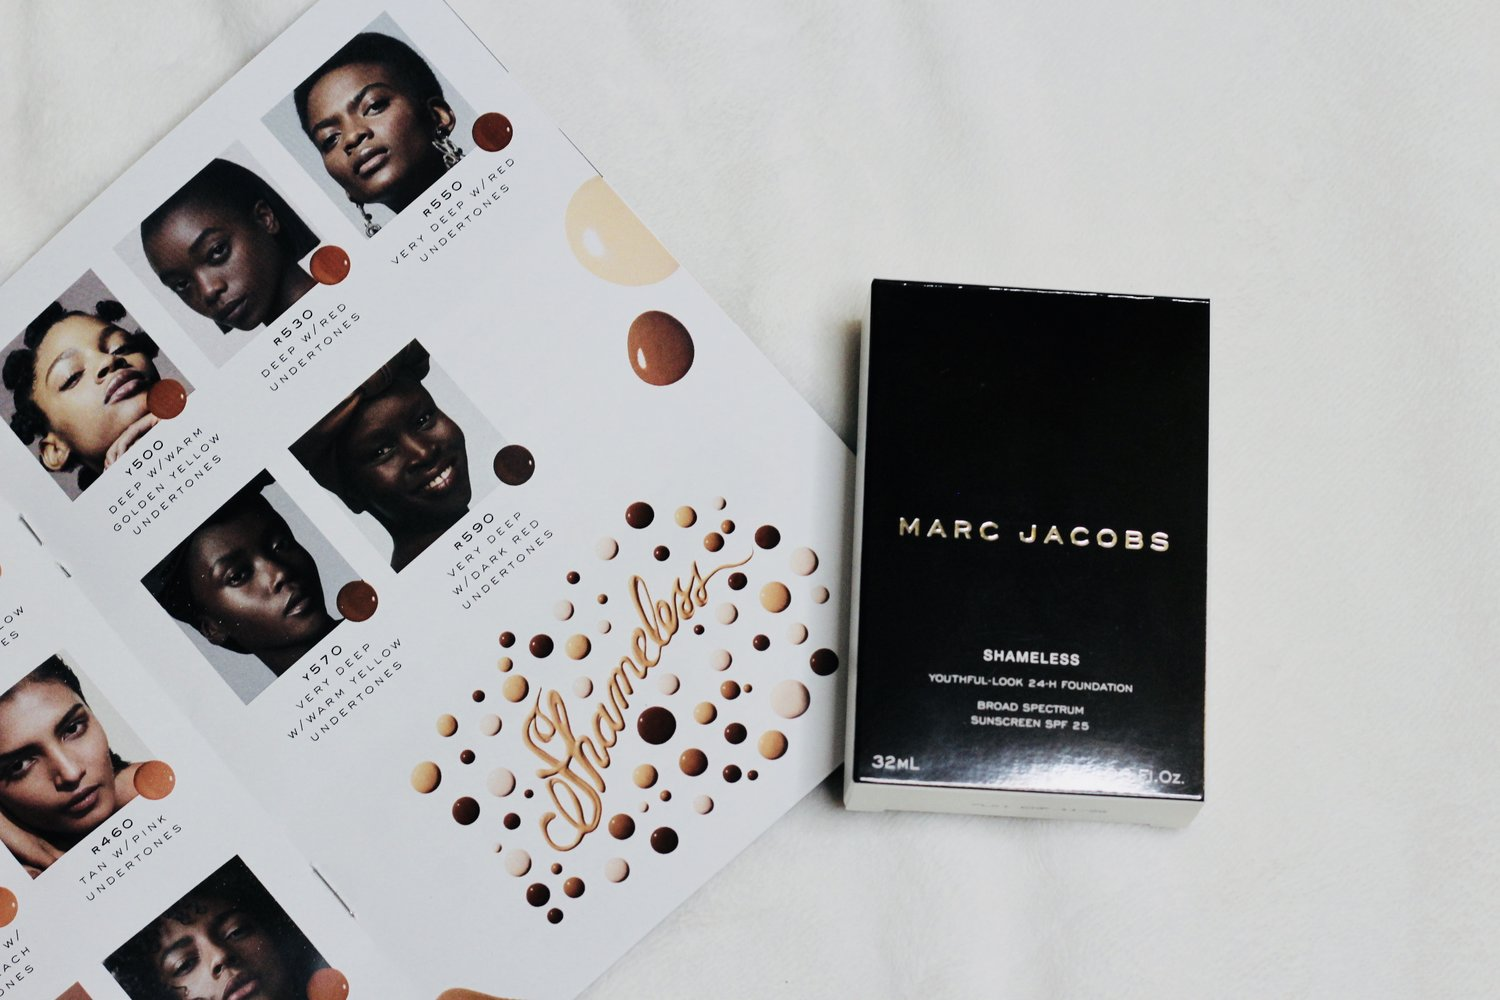 Marc Jacobs Shameless Foundation Review | I had the opportunity to try the new foundation from Marc Jacobs and shared my honest thoughts. Read more on the blog.